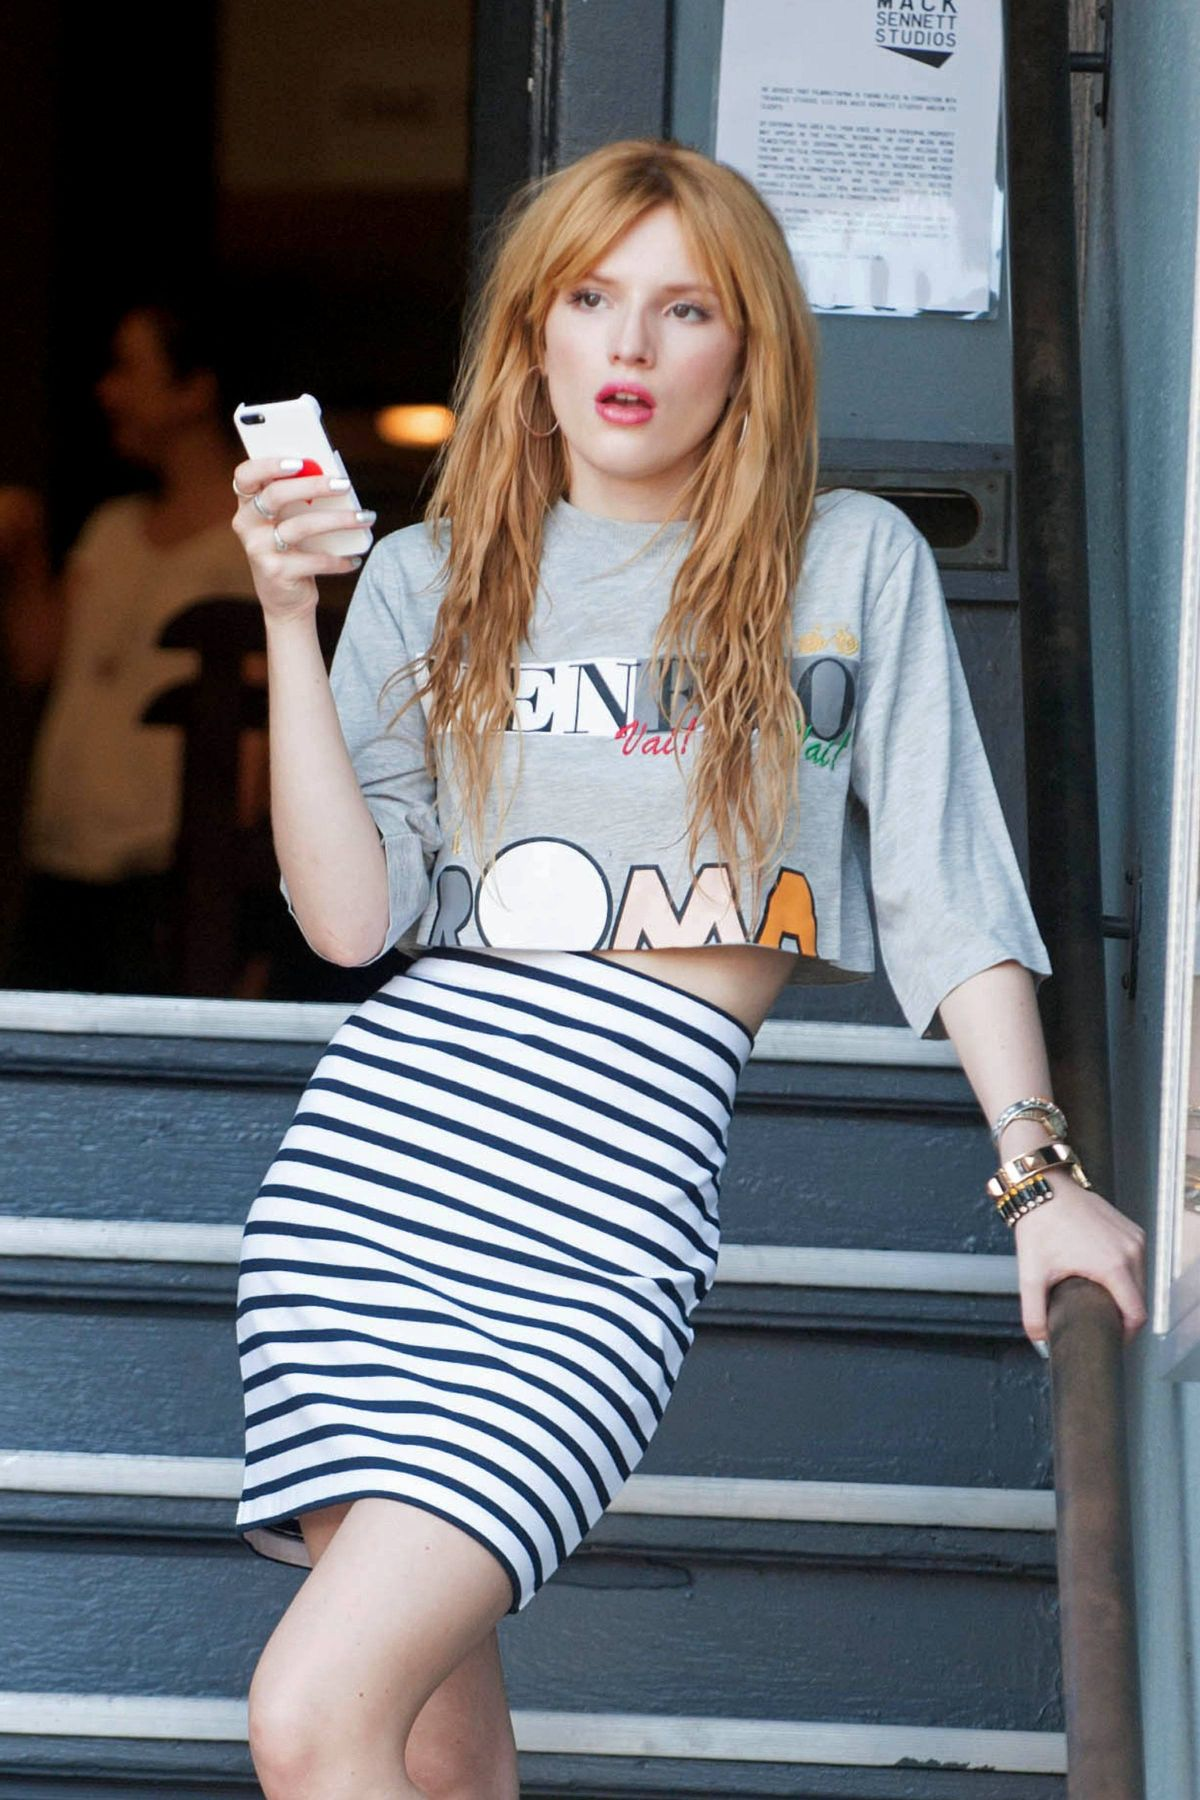 BELLA THORNE at a Photoshoot in Los Angeles